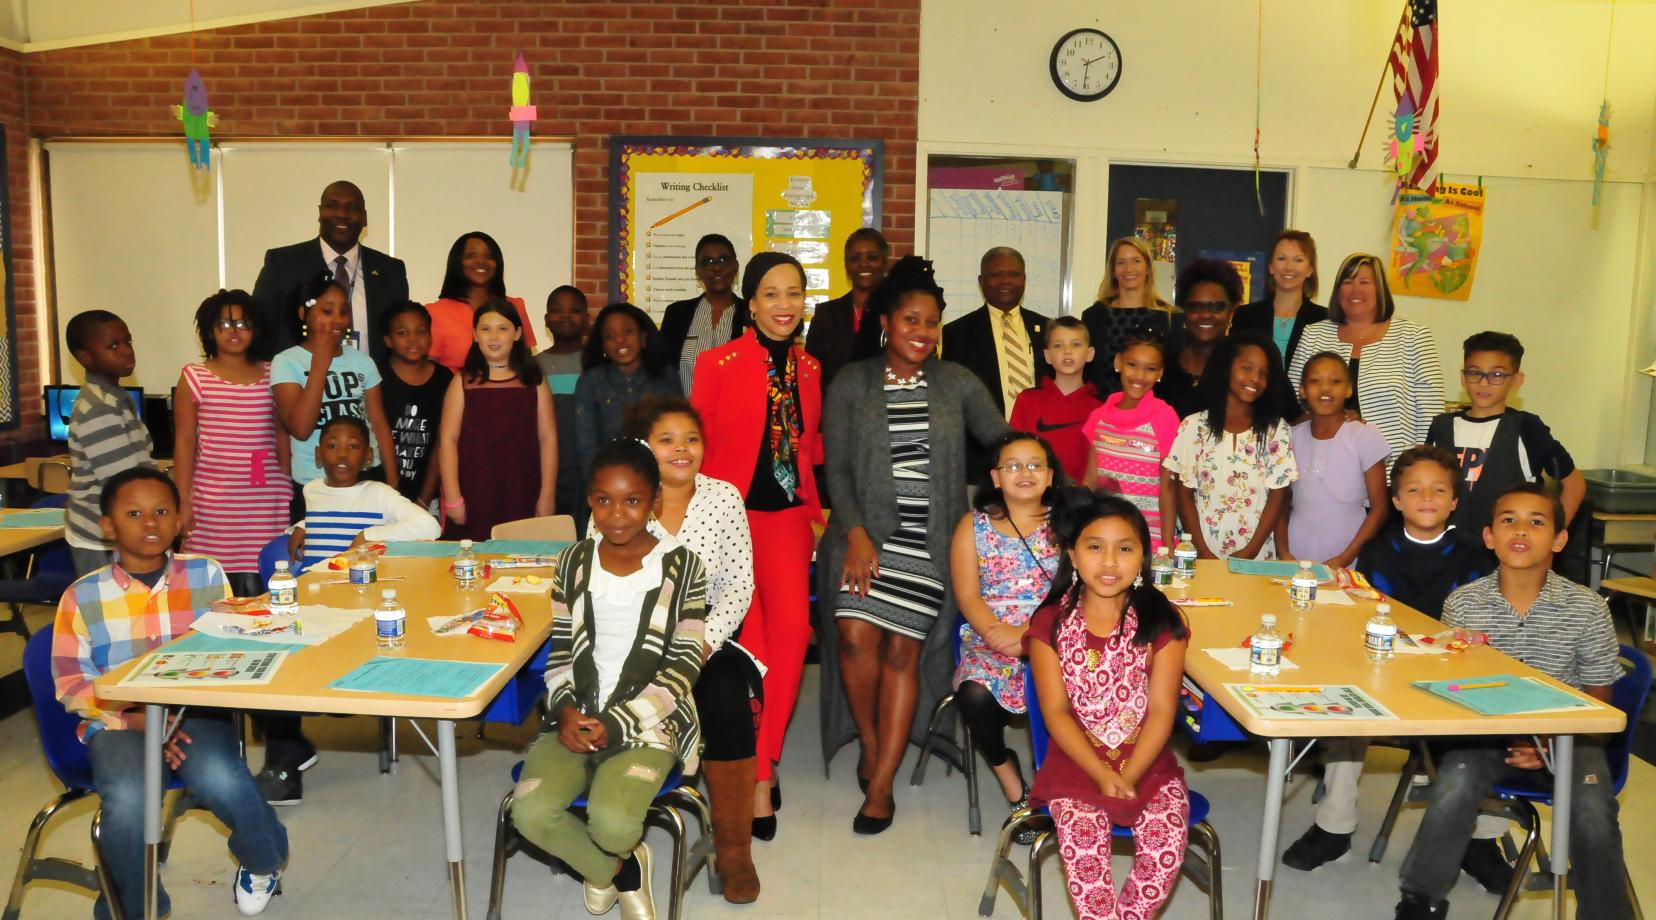 Del. Congresswoman Lisa Blunt Rochester and Ciara Martin, DSU nutrition educator (both in the center),  join students of Towne Point Elementary School and others for a photo after teaching about healthy and unhealthy drink choices.